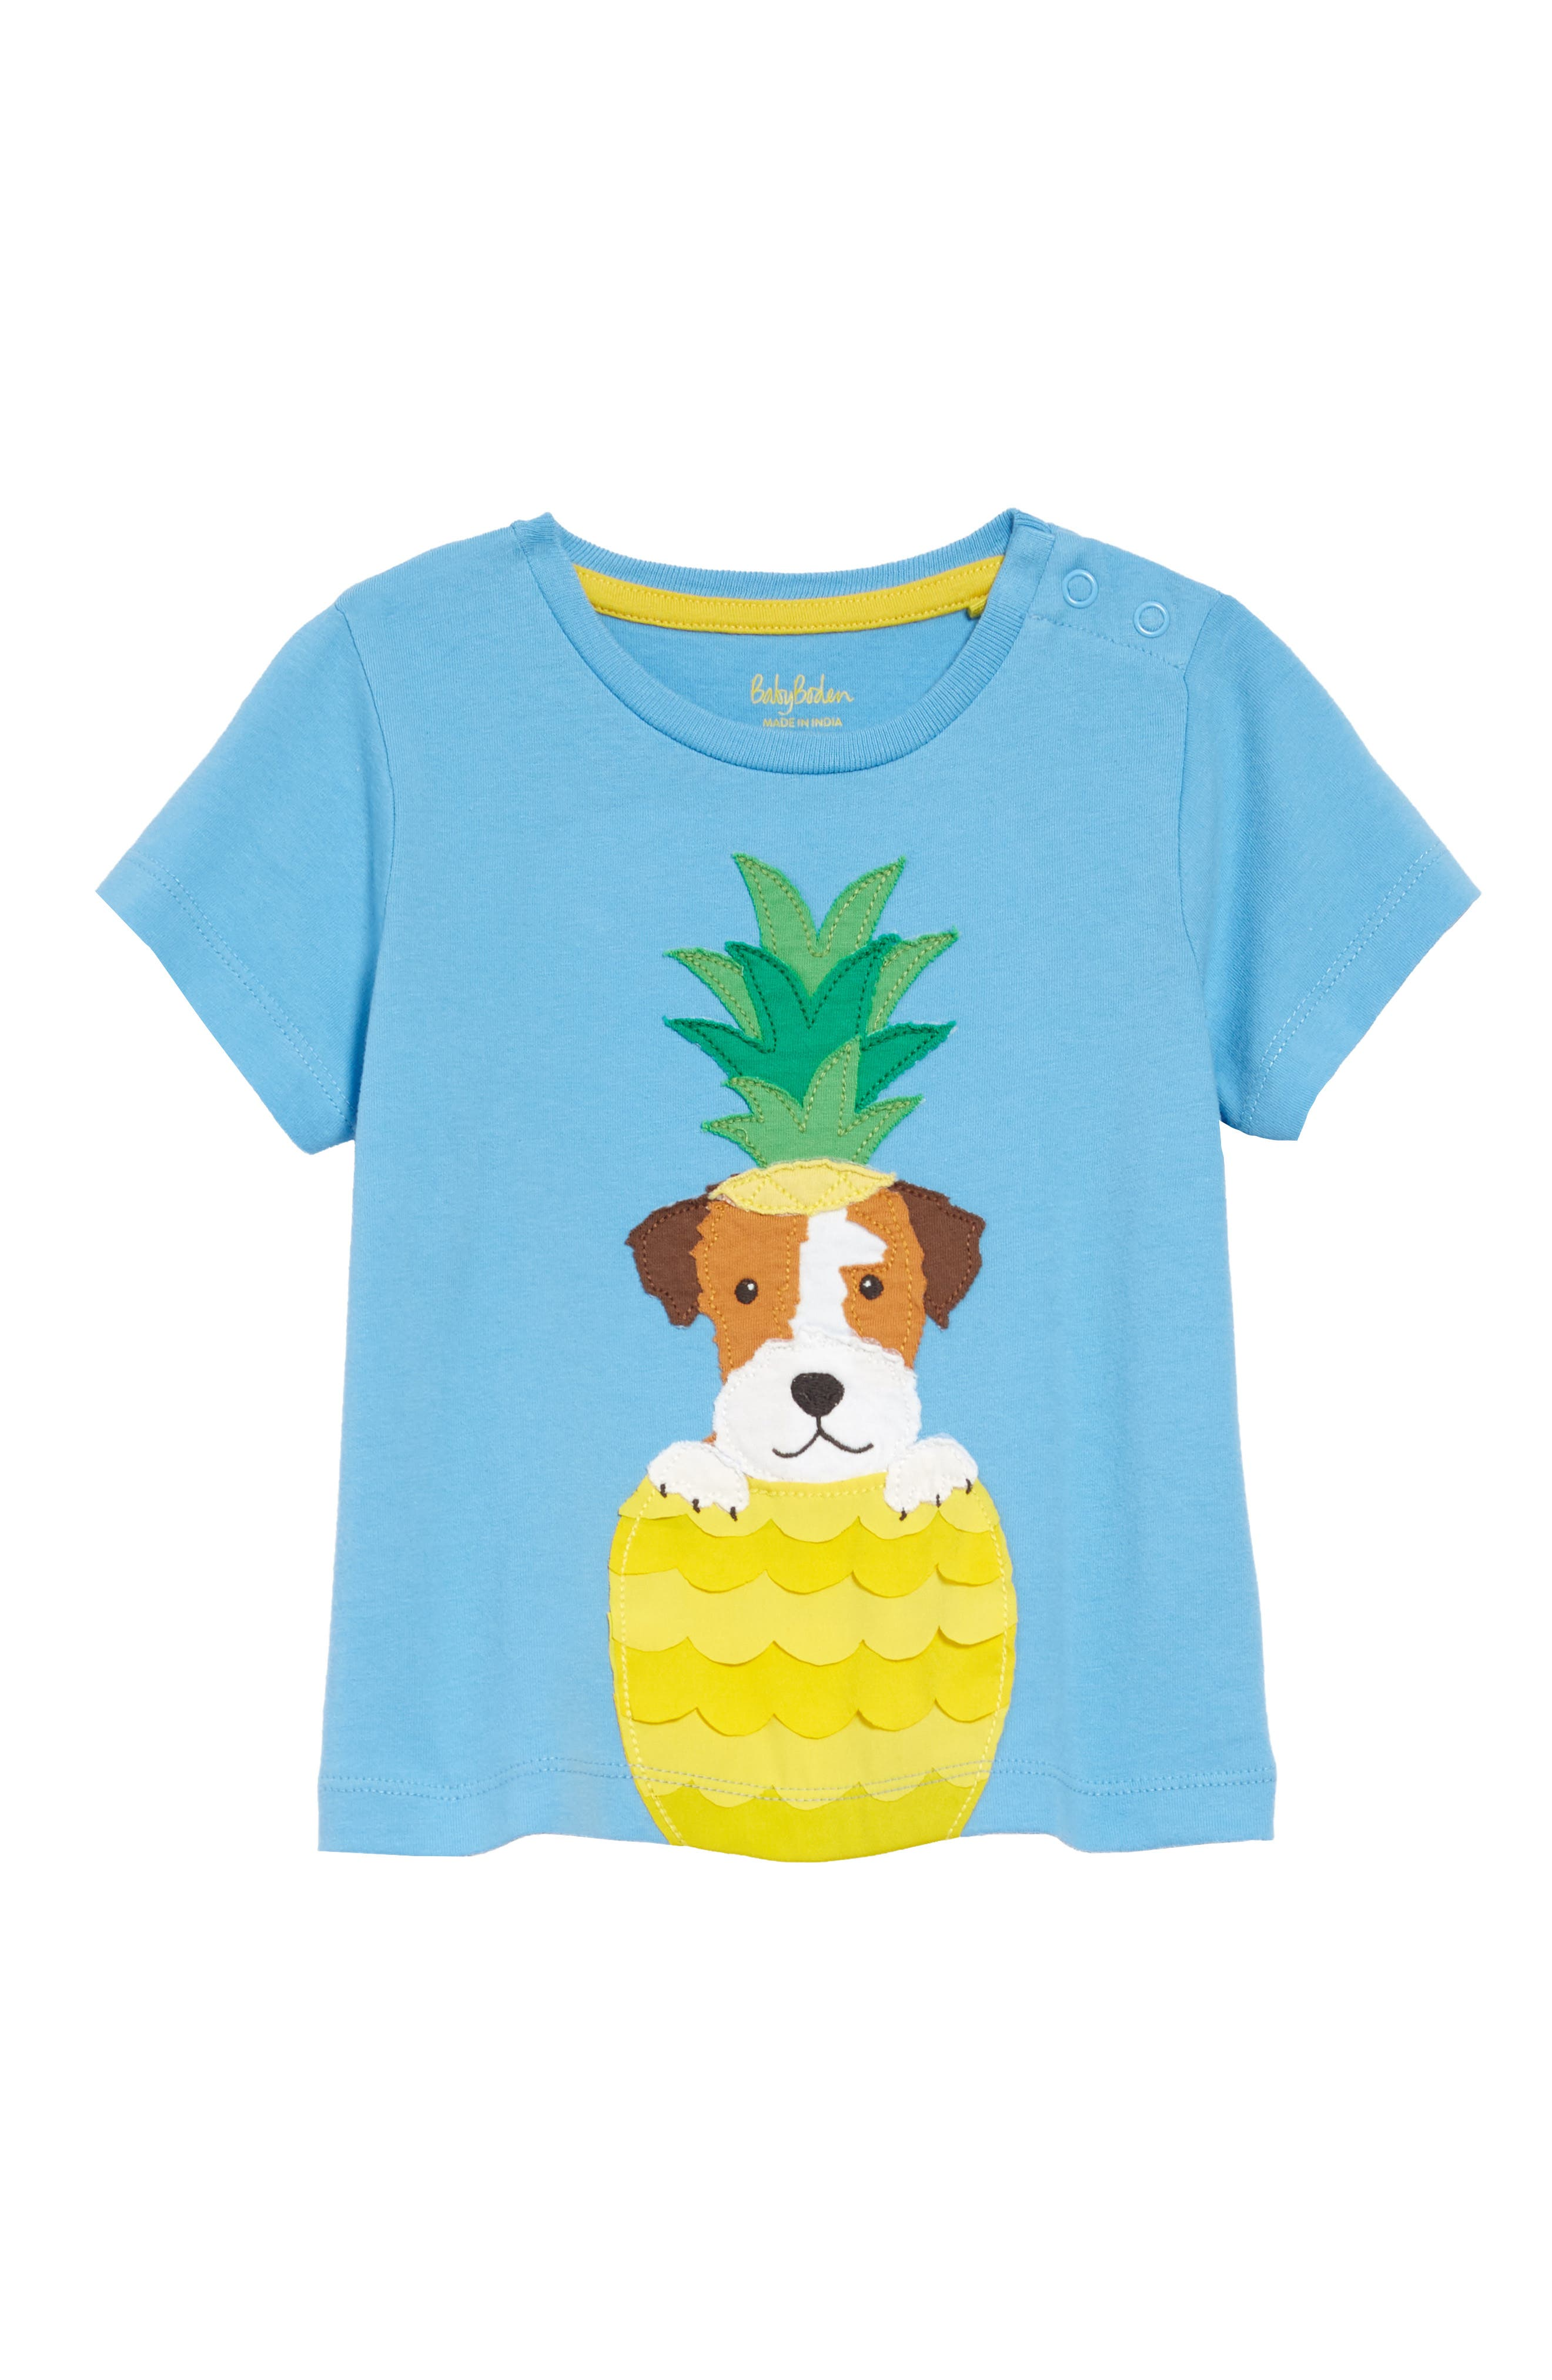 Animal appliques make sunny days even more fun in this comfy cotton T-shirt. Style Name: Boden Applique T-Shirt (Baby). Style Number: 6063544. Available in stores.